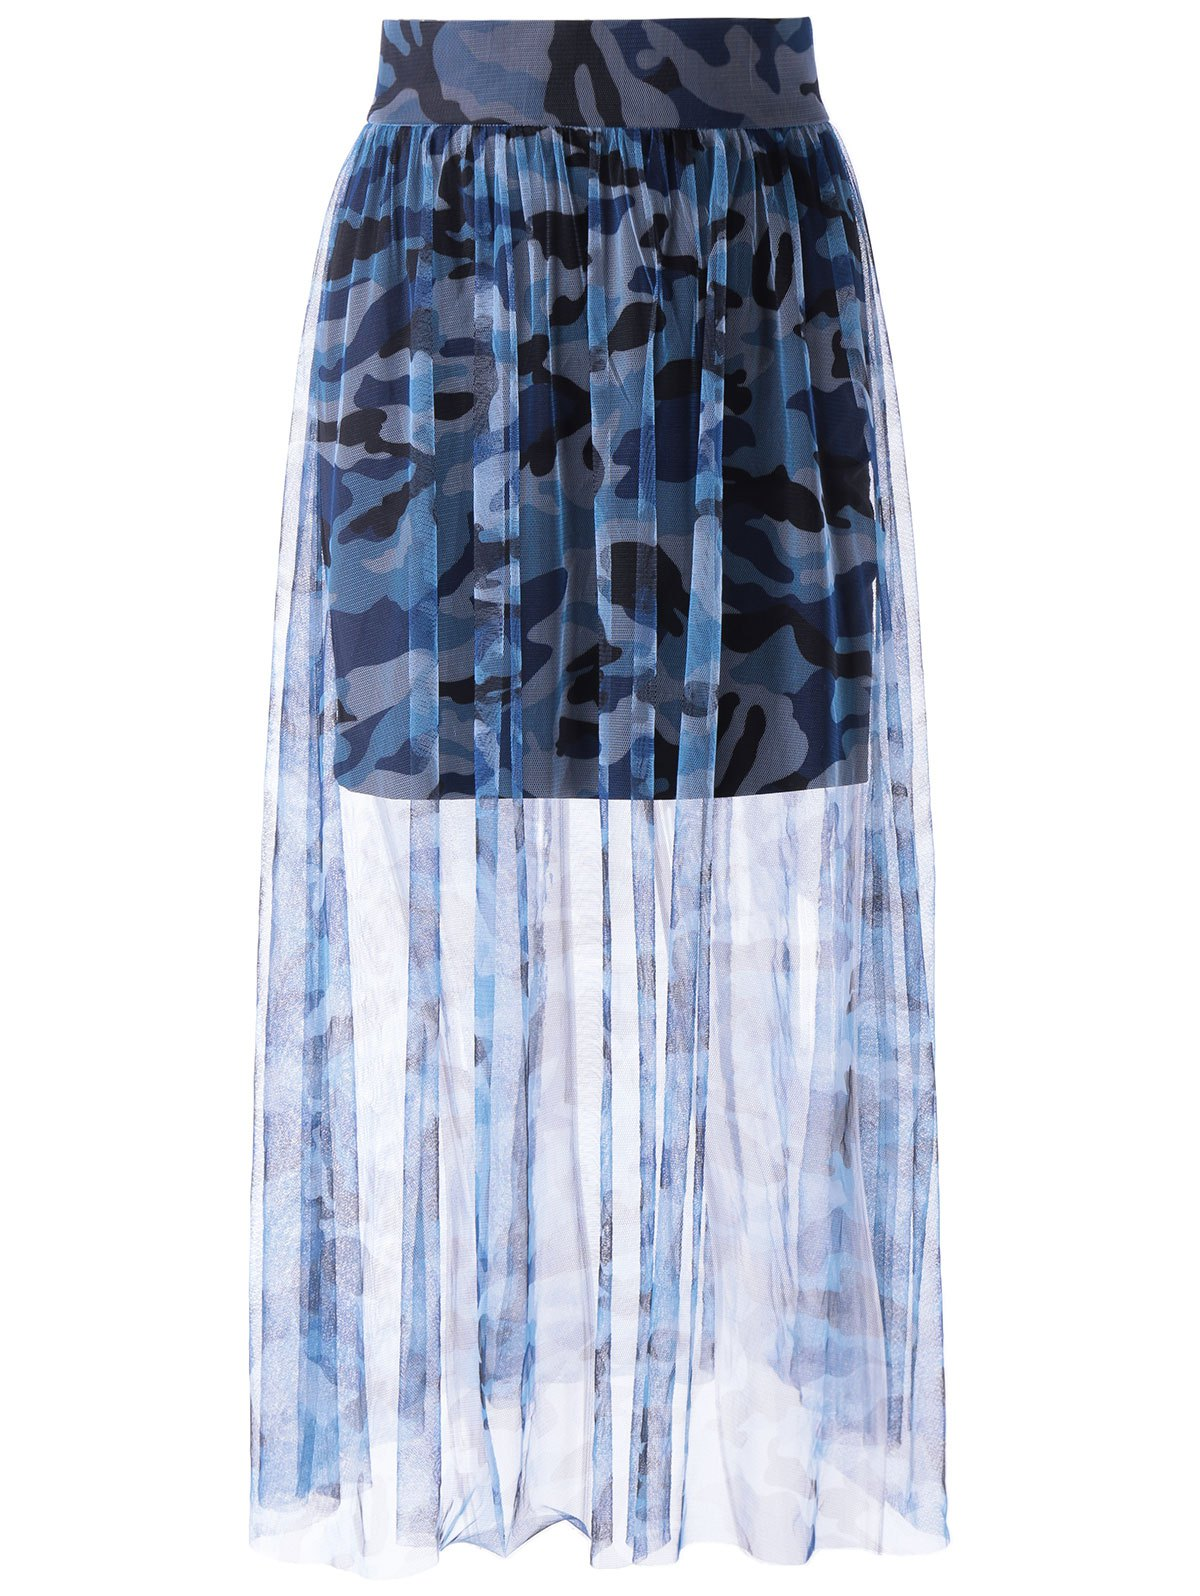 Fashionable Camo Printing Tulle Grenadine Skirt For Women - COLORMIX S